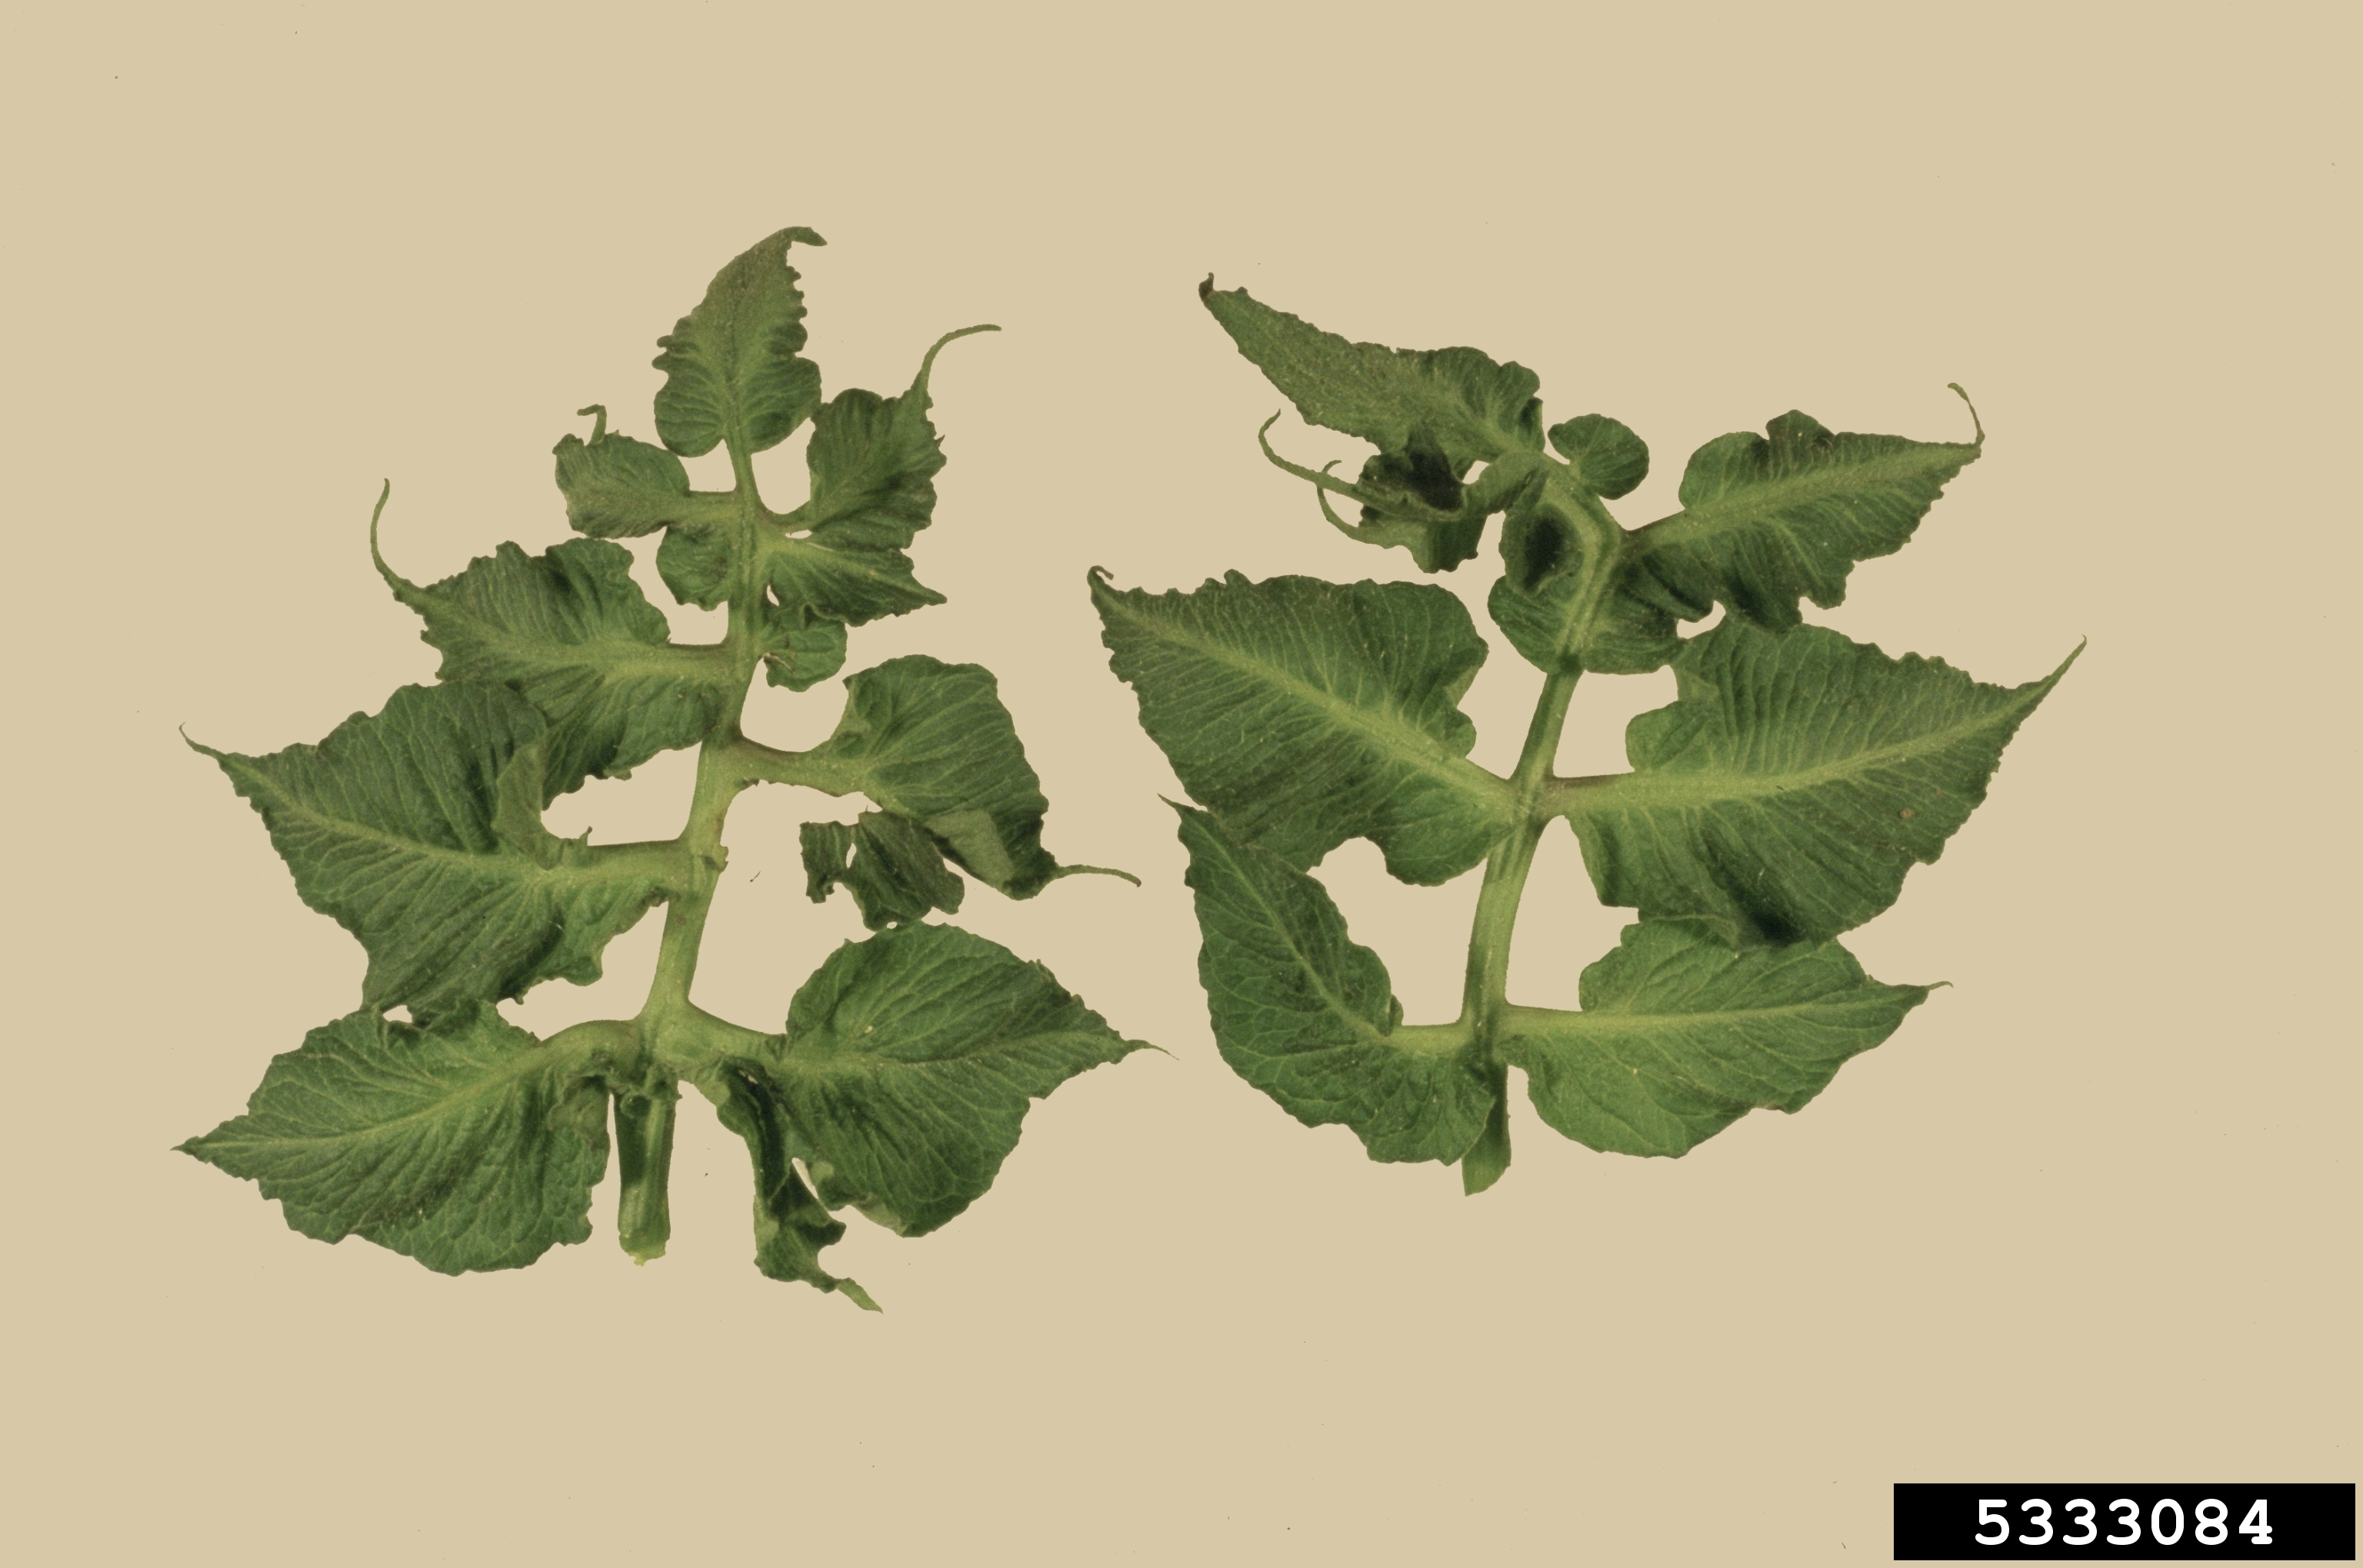 Distorted, cuplike tomato leaves